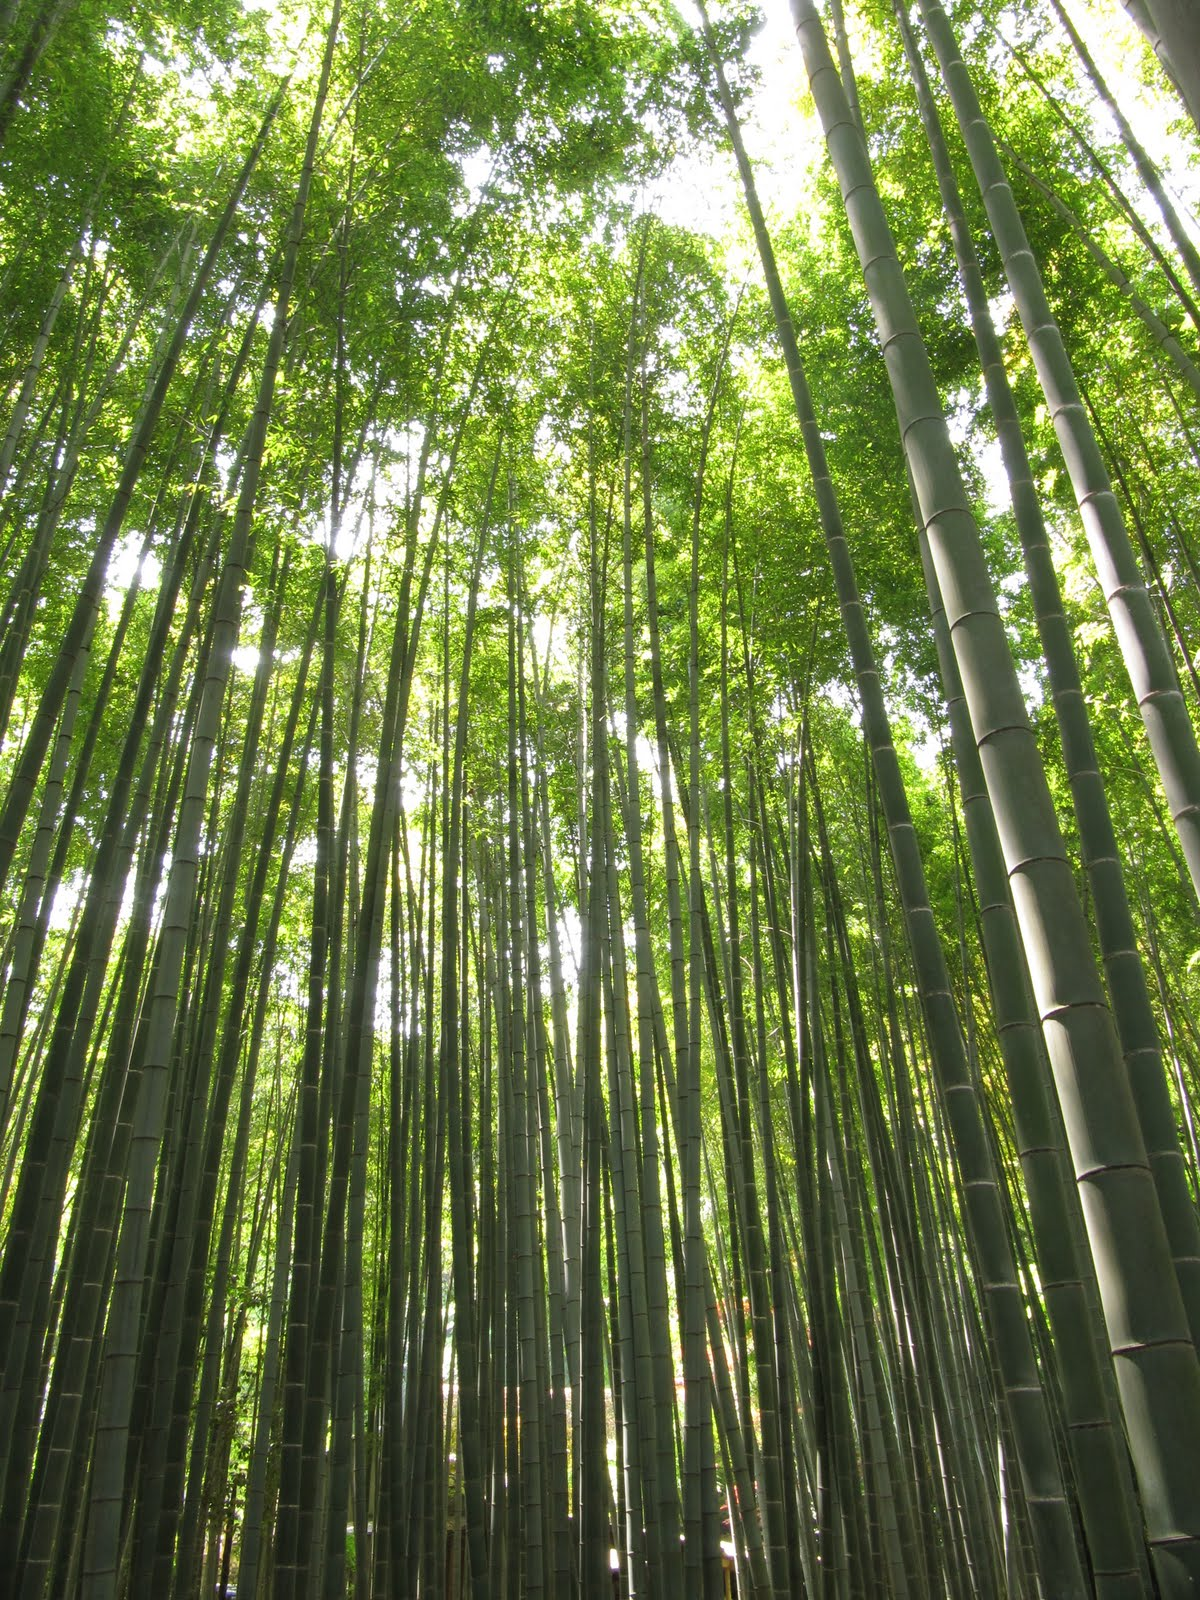 Being Under The Canopy Of A Bamboo Forest Is A Very Unique Experience